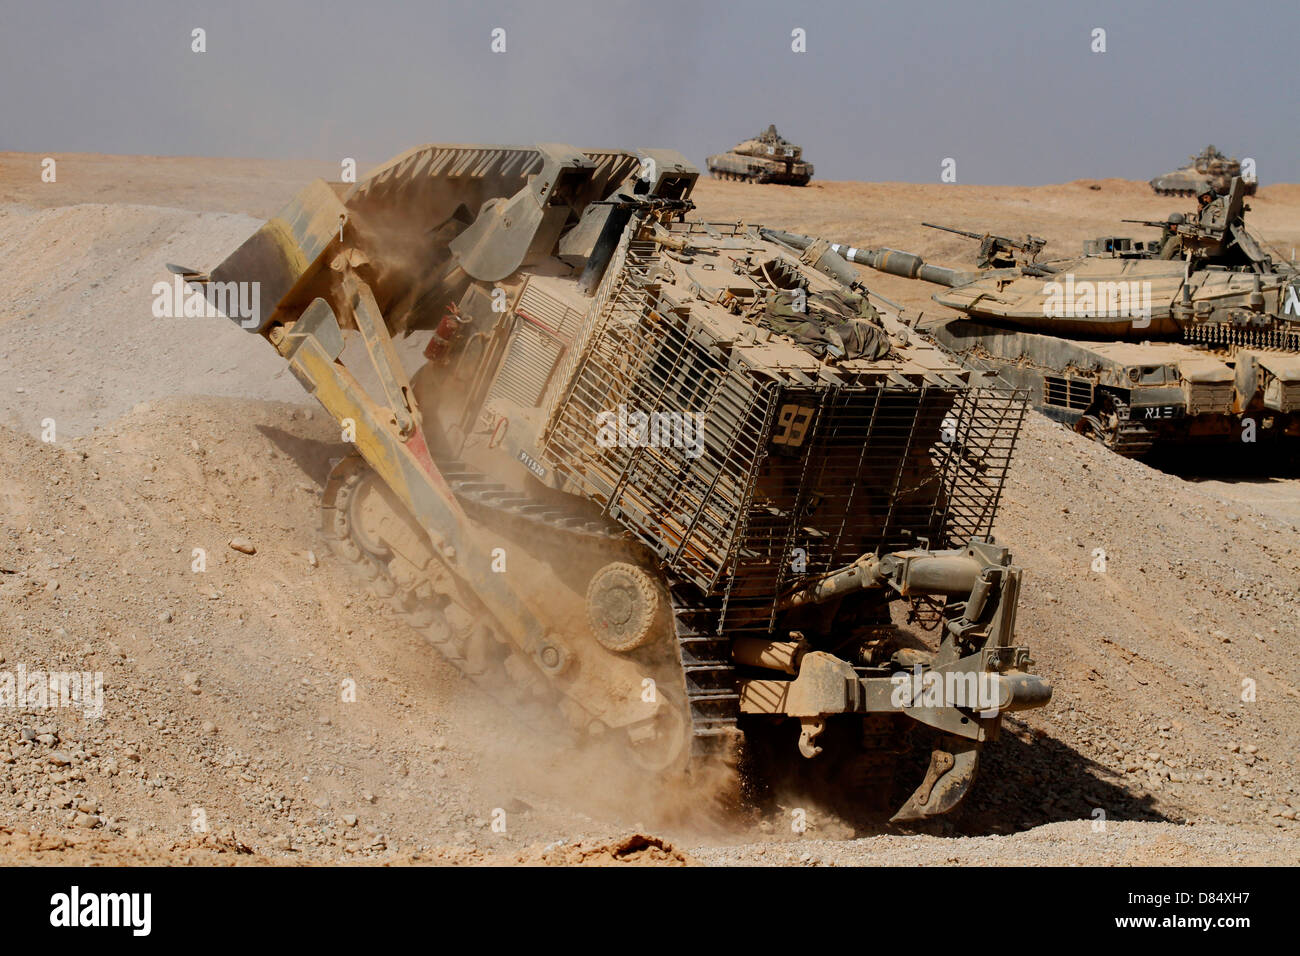 An Israel Defense Force armoured Caterpillar D-9 clearing the way for Mark IV main battle tank during an exercise. - Stock Image